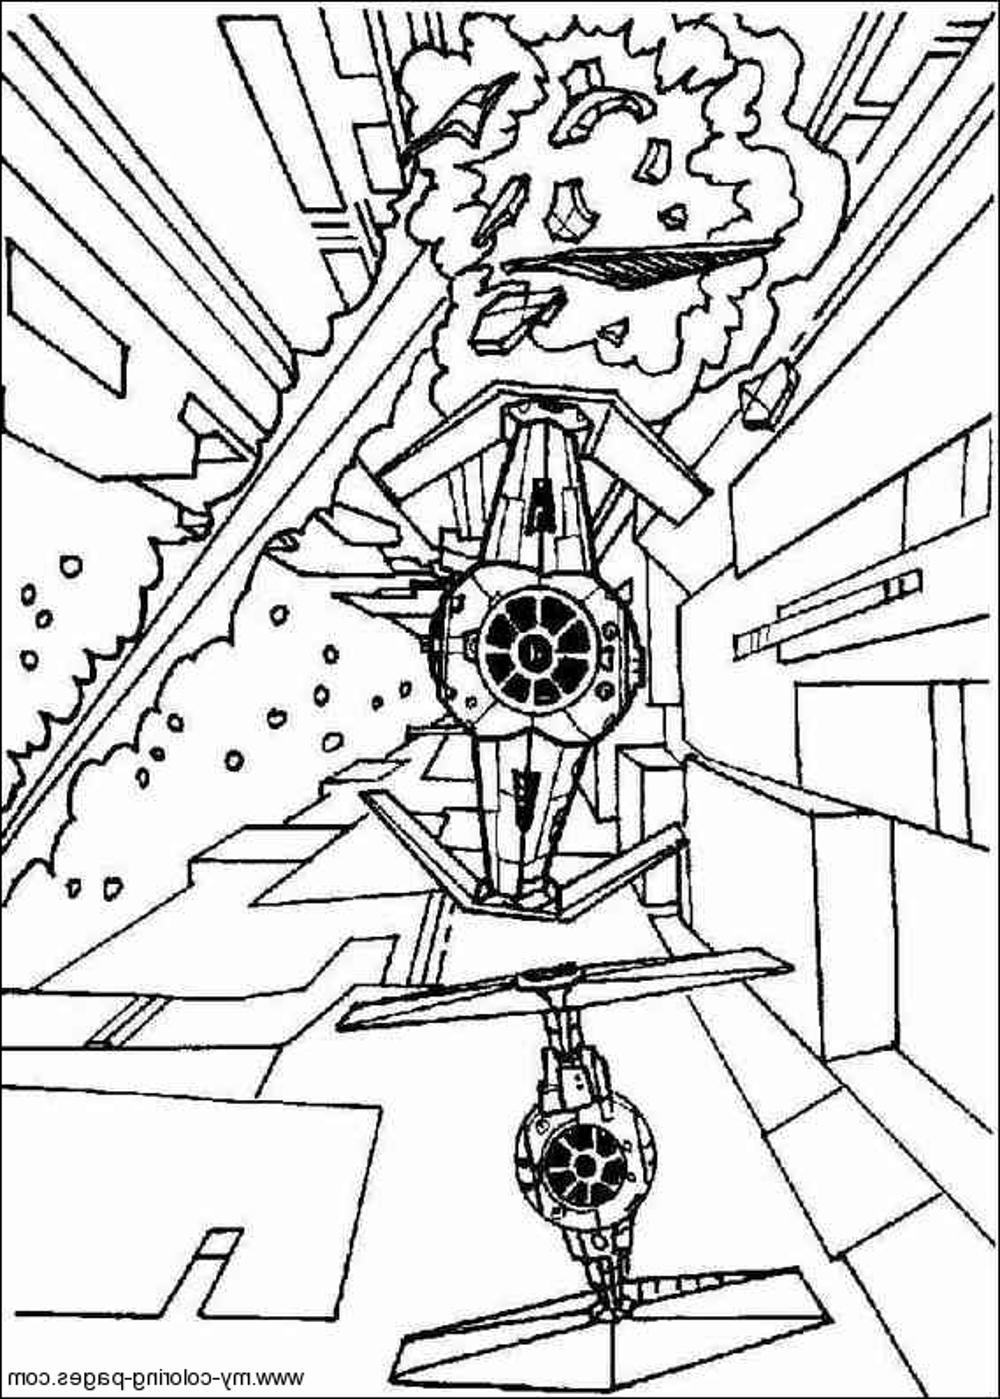 printable lego star wars coloring pages lego star wars coloring pages to download and print for free wars lego printable coloring pages star